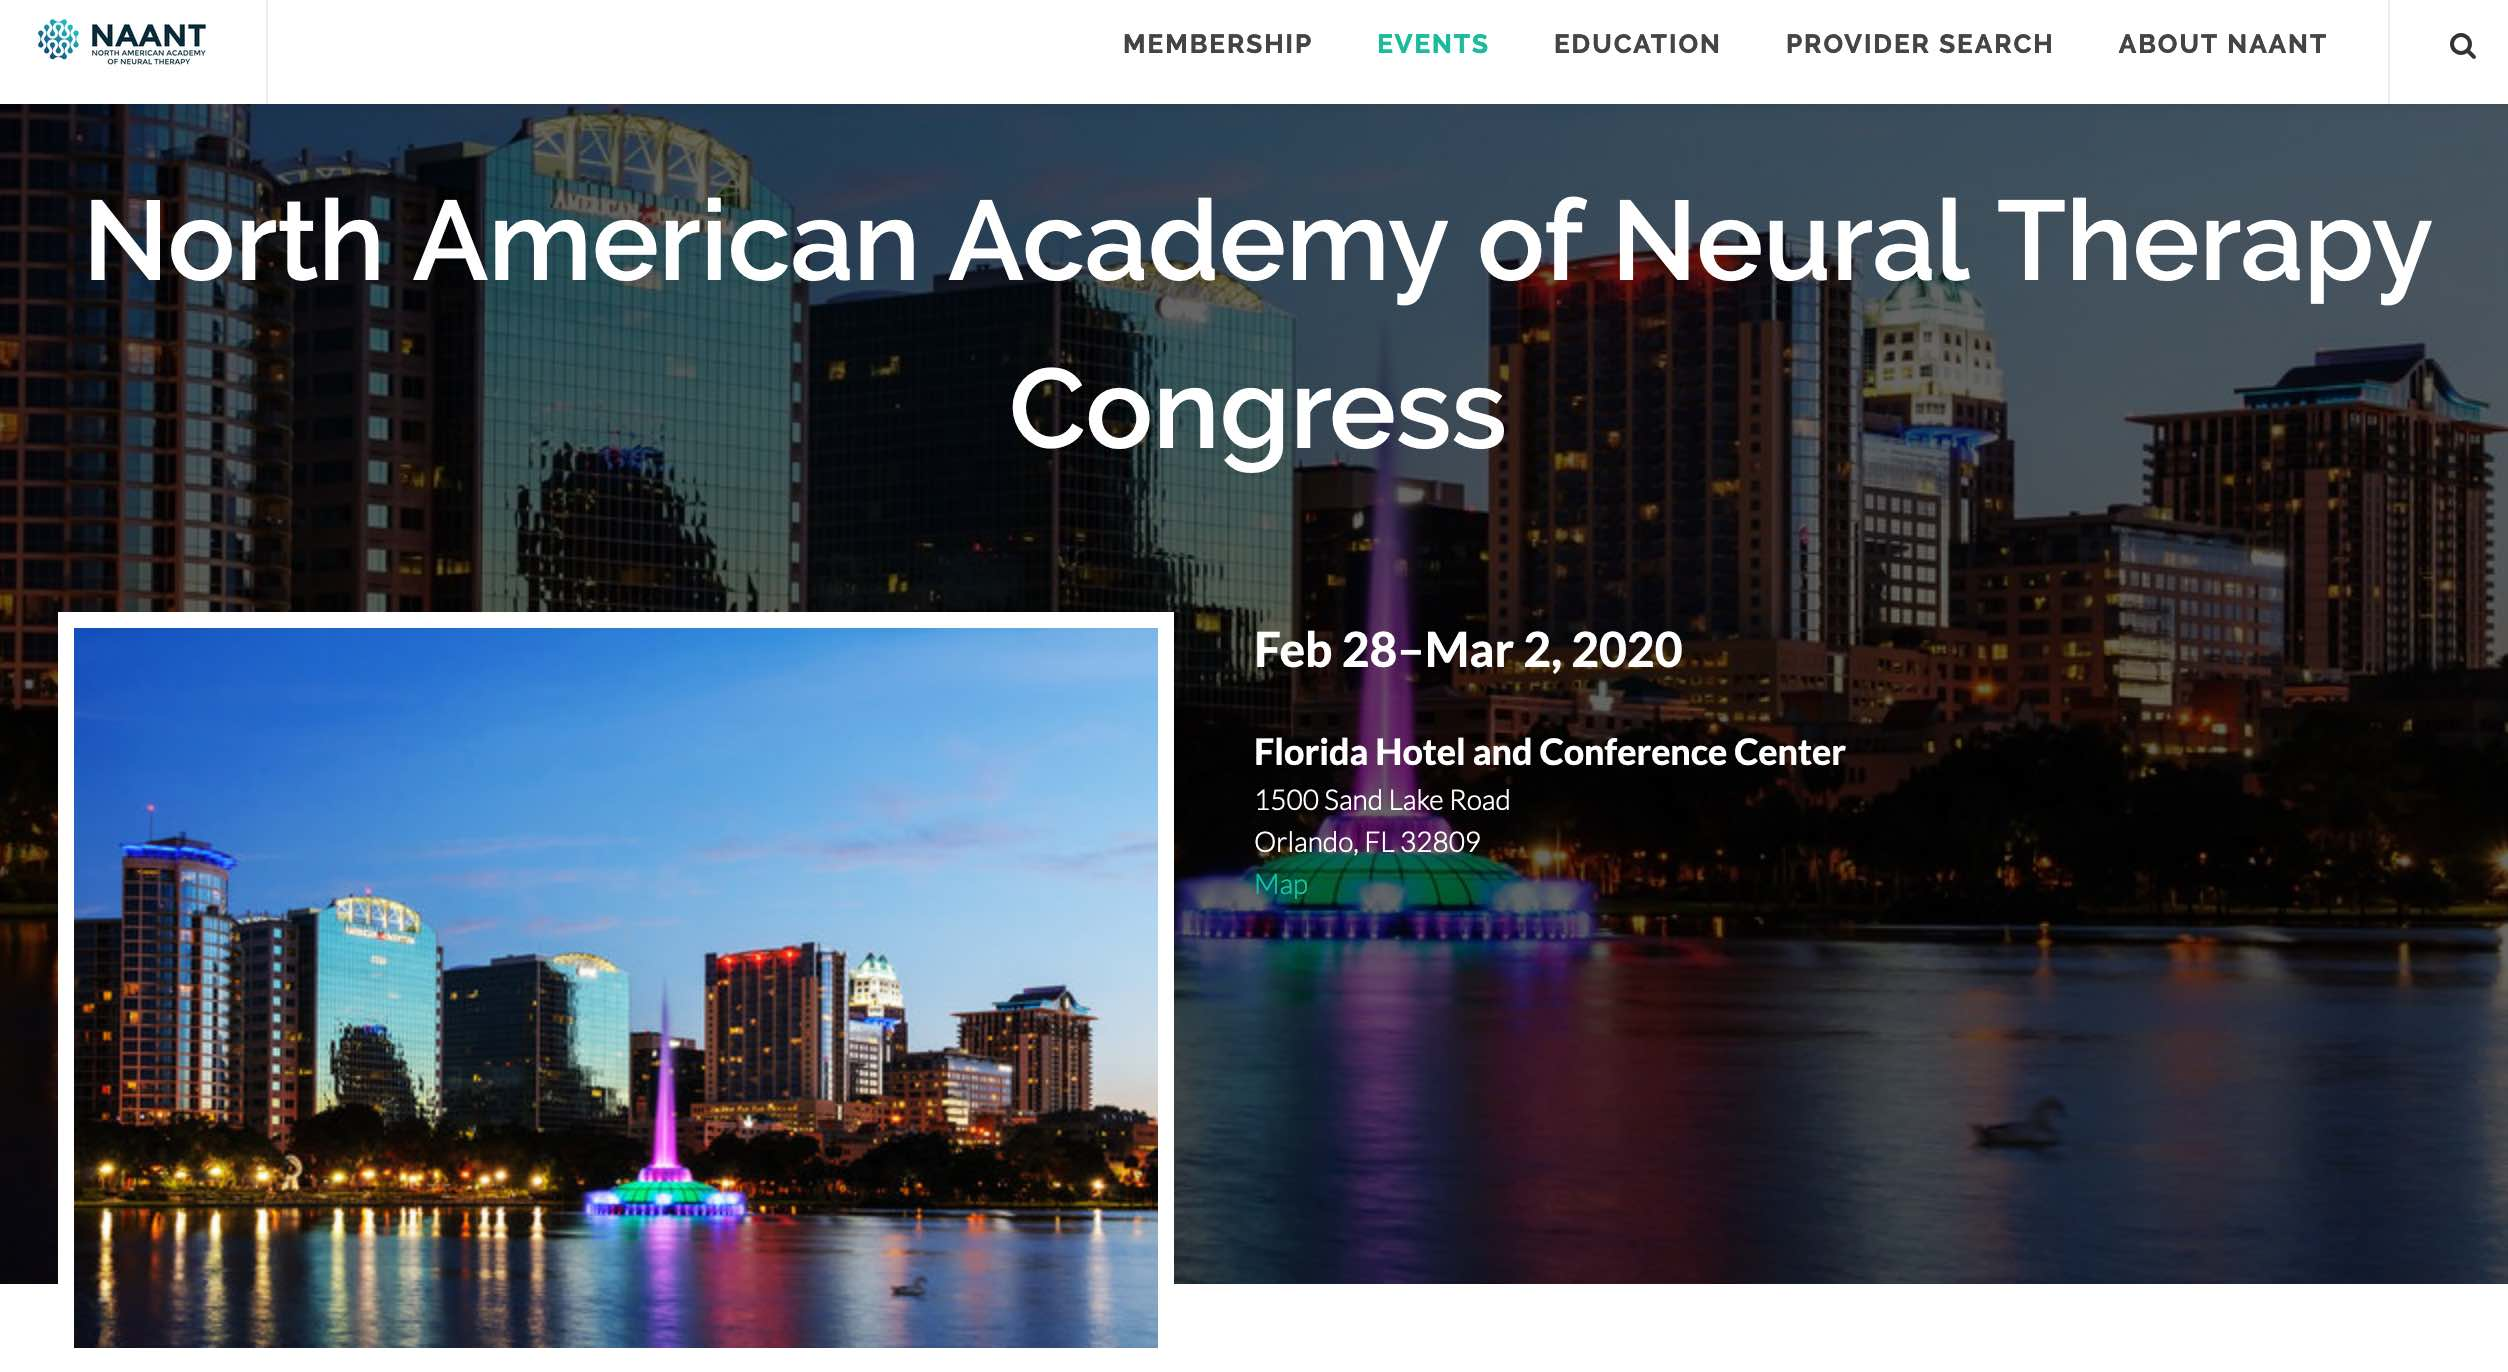 NAANT CONGRESS FEB 2020